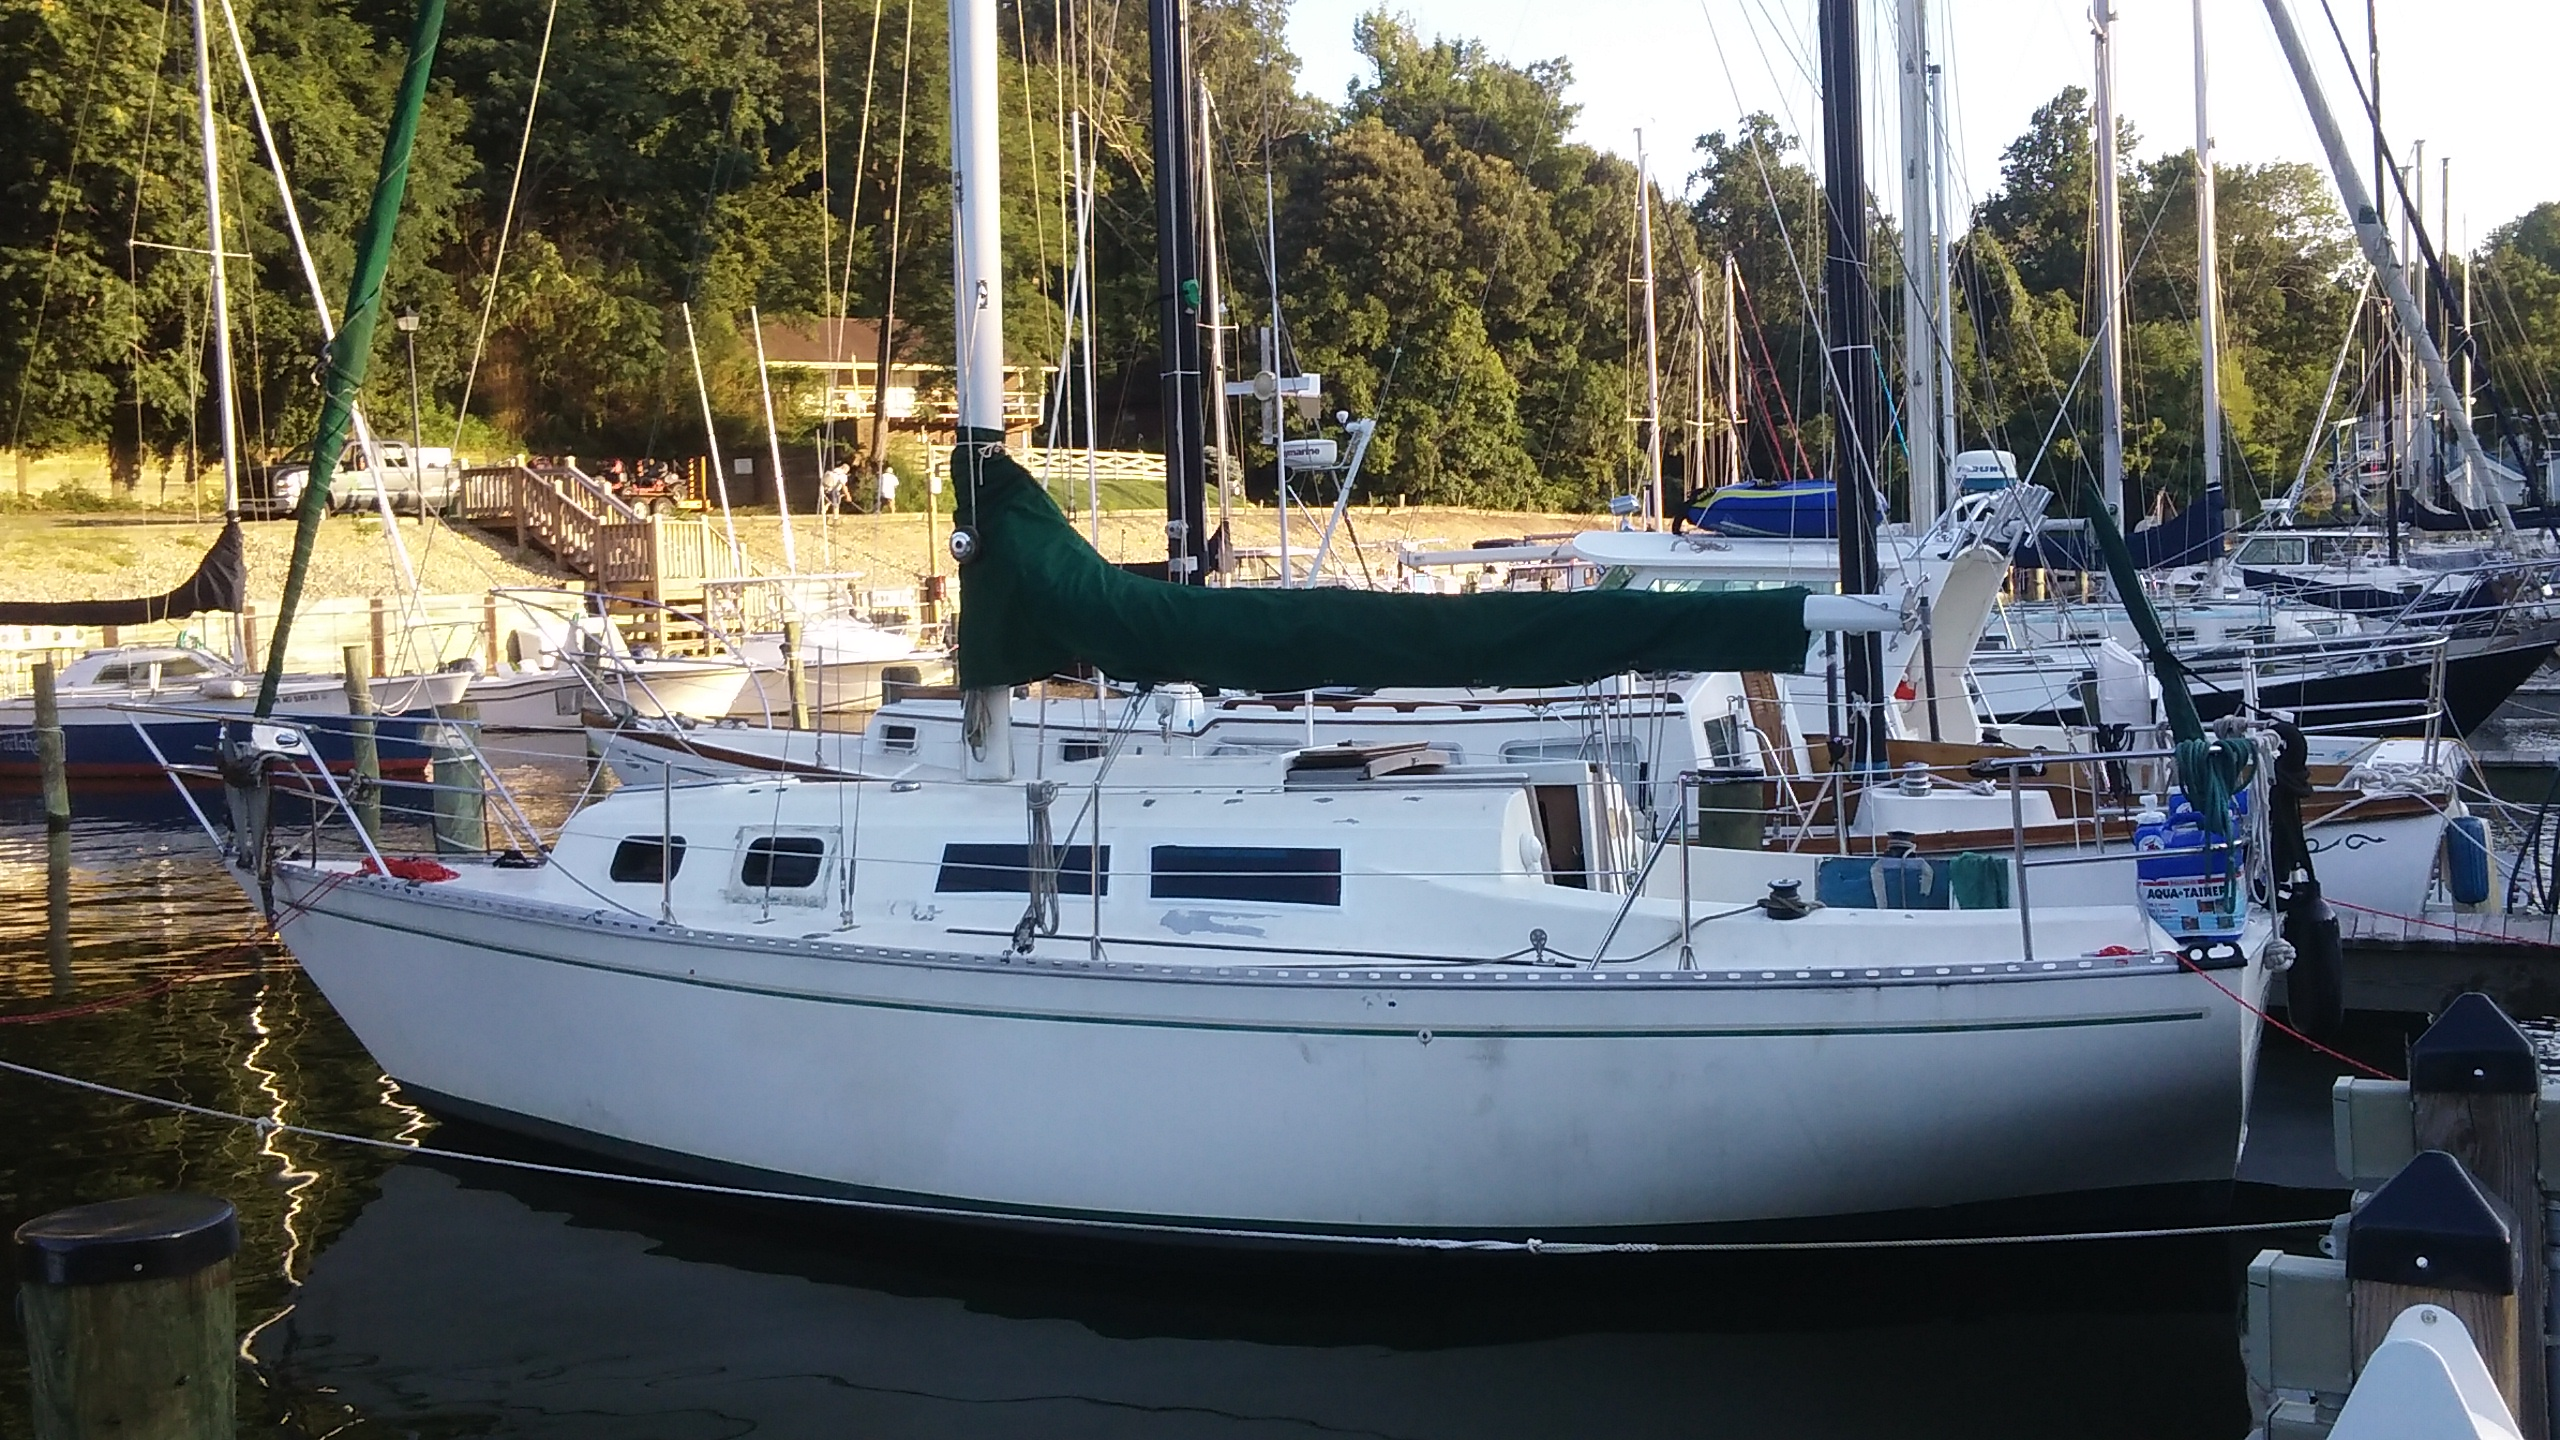 Review of the Columbia 8.7 Sailboat